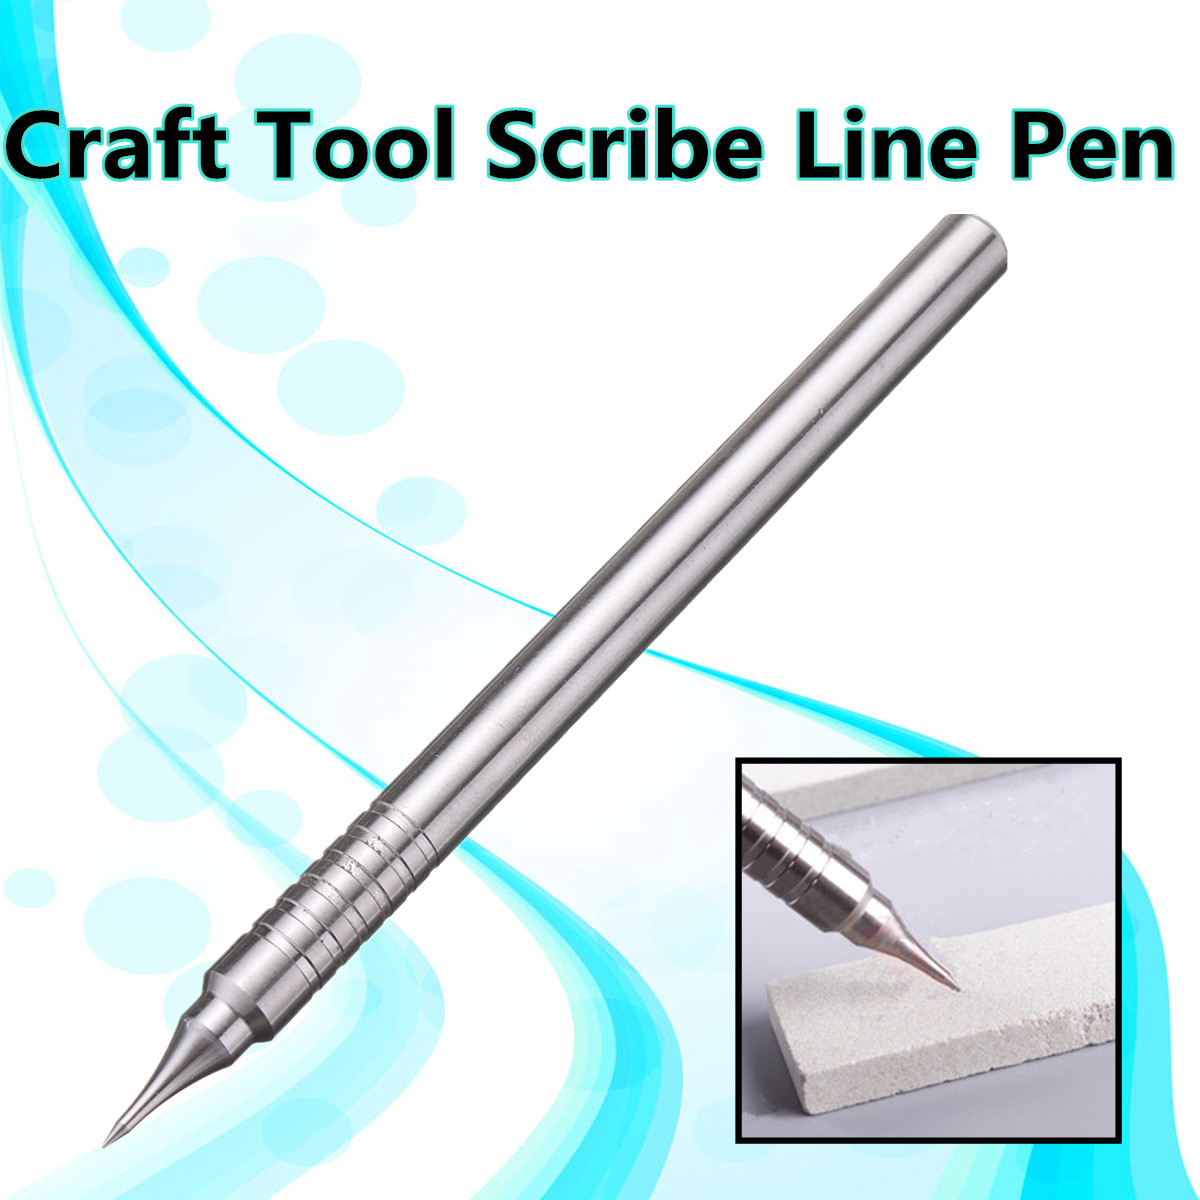 Stainless Steel Model Tools Plane Gundam Scriber Craft Tool Scribe Line Pen new phoenix 11207 b777 300er pk gii 1 400 skyteam aviation indonesia commercial jetliners plane model hobby